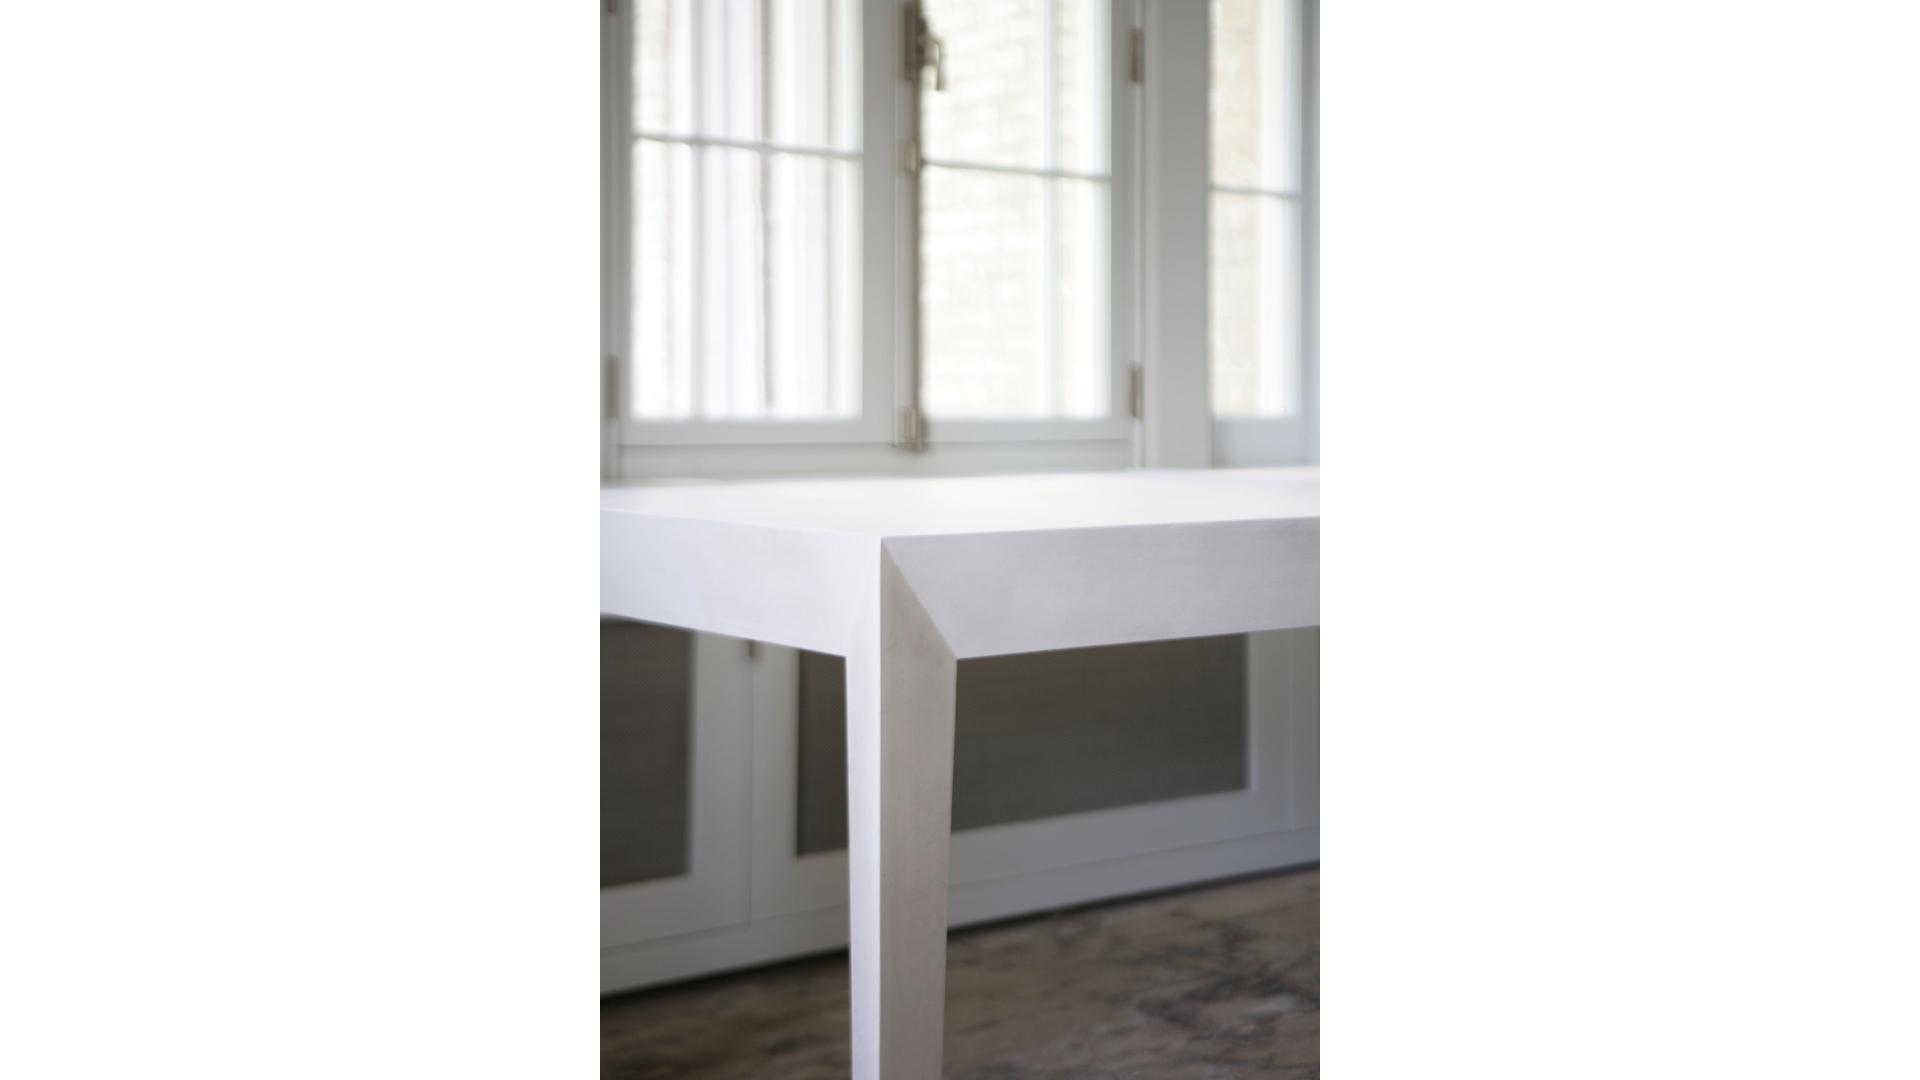 Mirabelle Table ii | © Bernardo Guillermo Studio